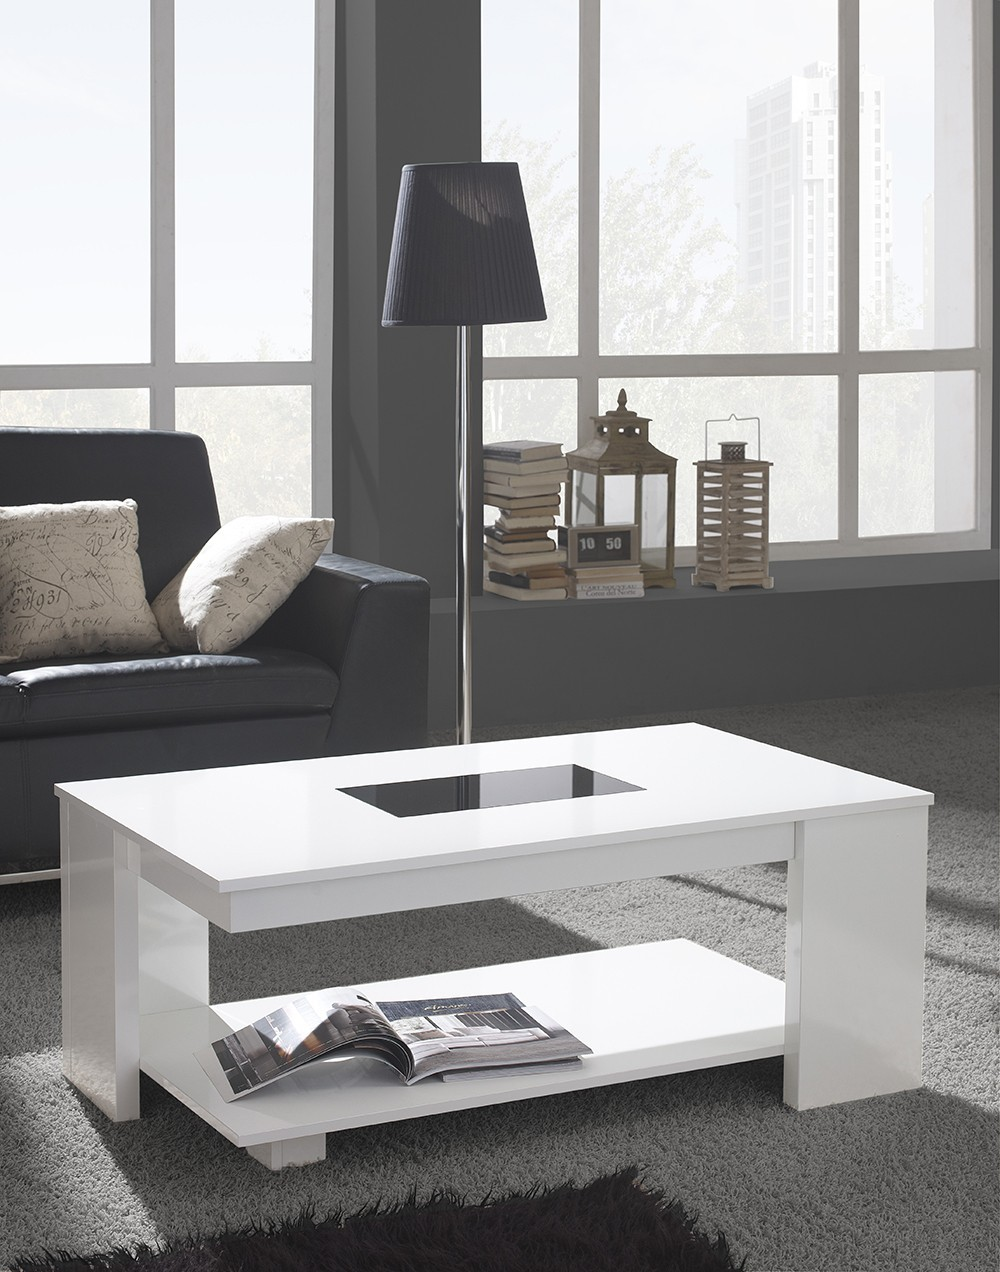 Table basse relevable RICCARDO, disponible en 3 coloris